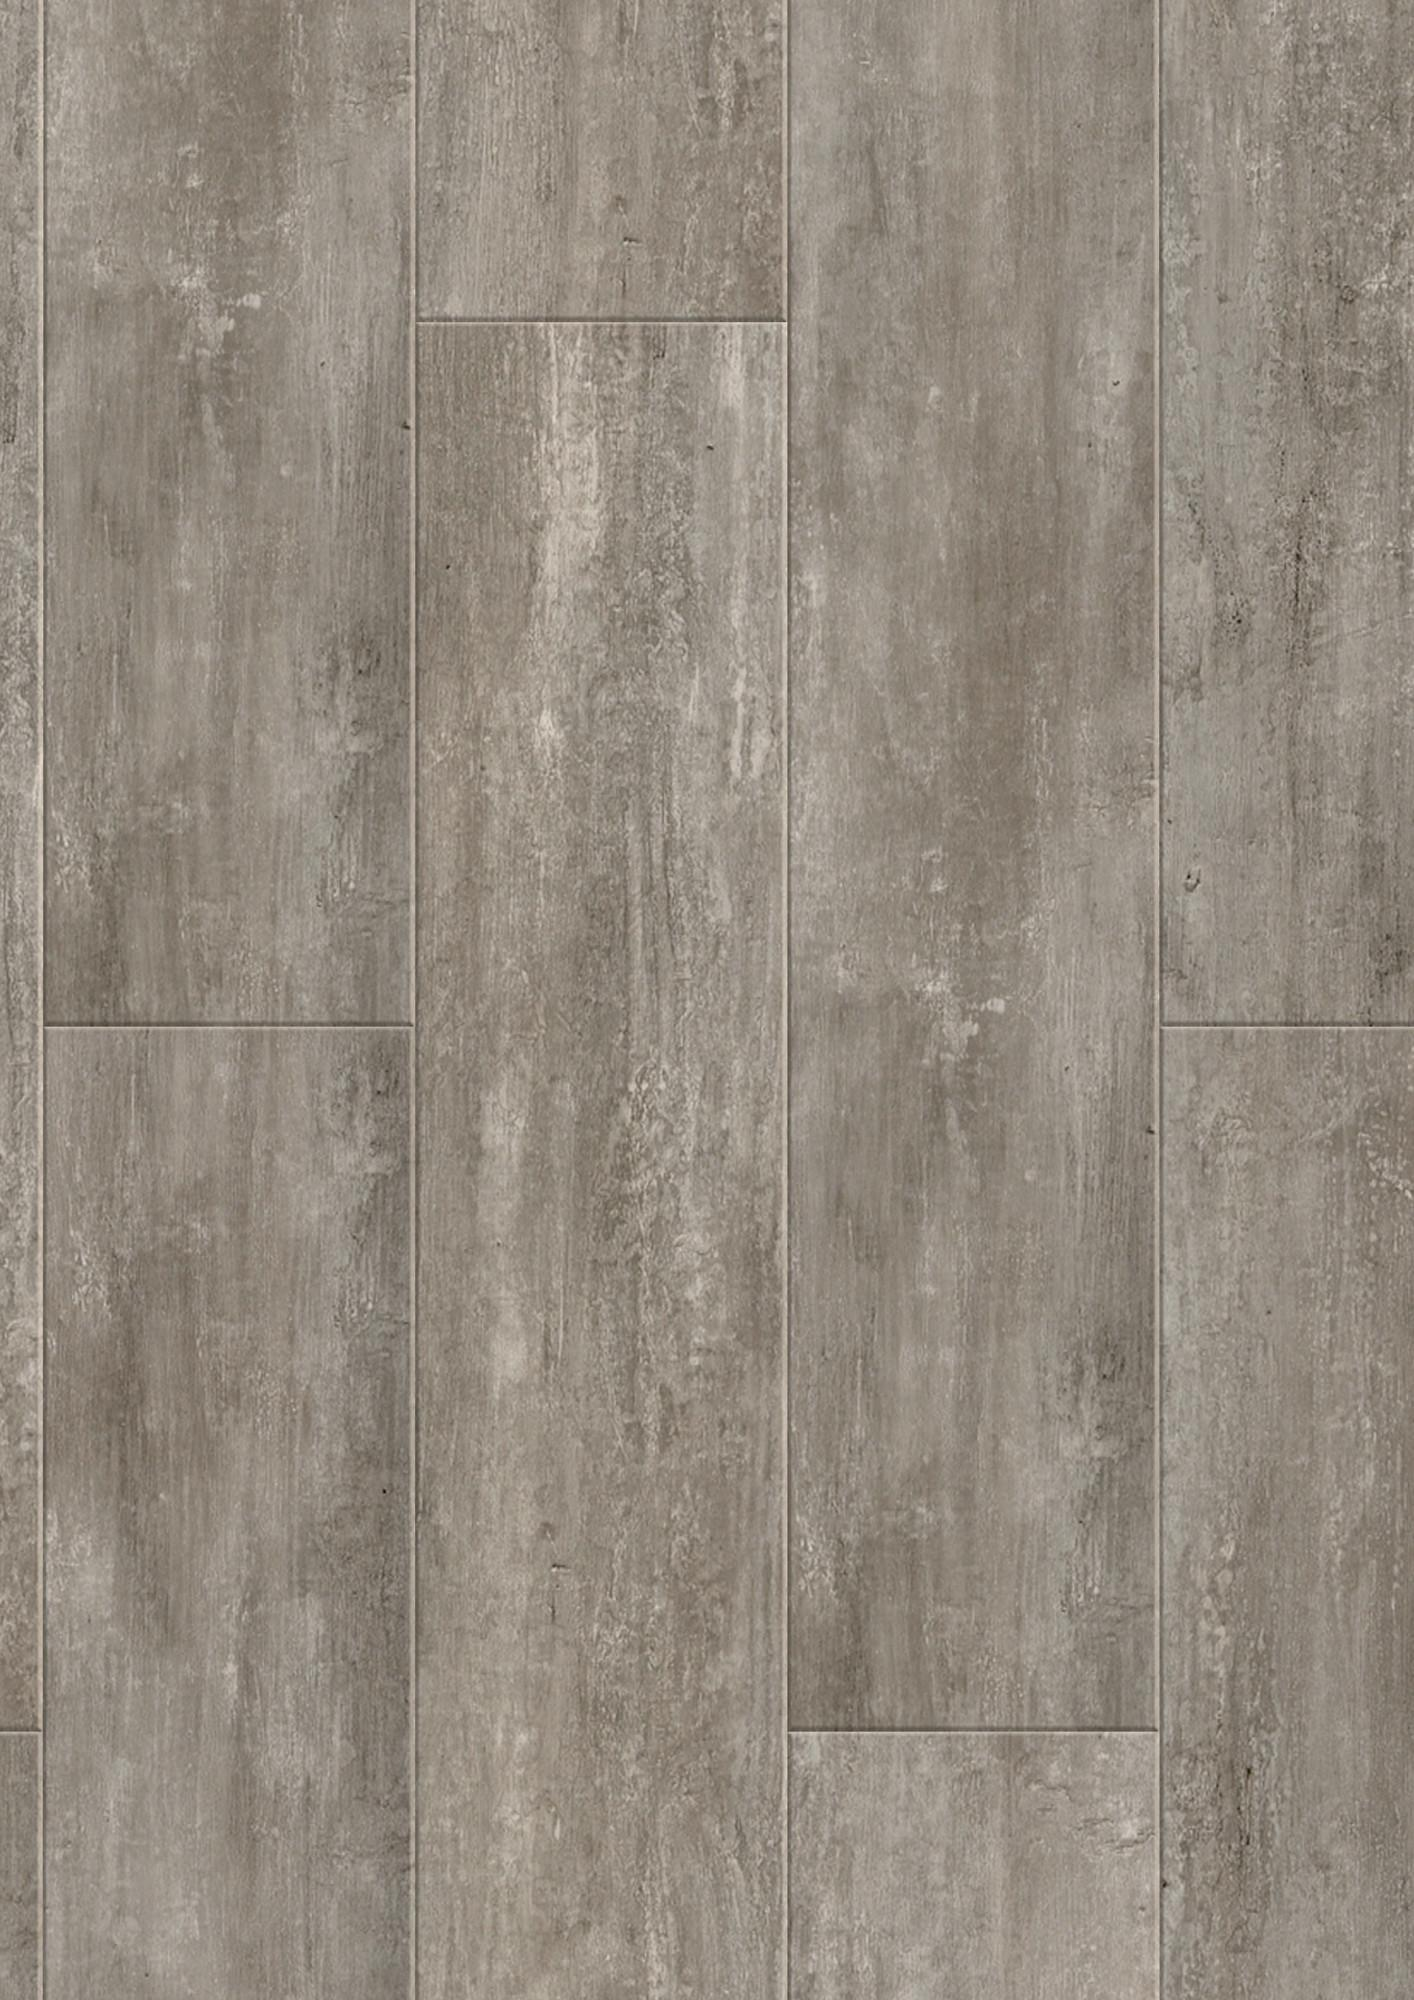 Gerflor Creation30 Clic 0447 - Amador